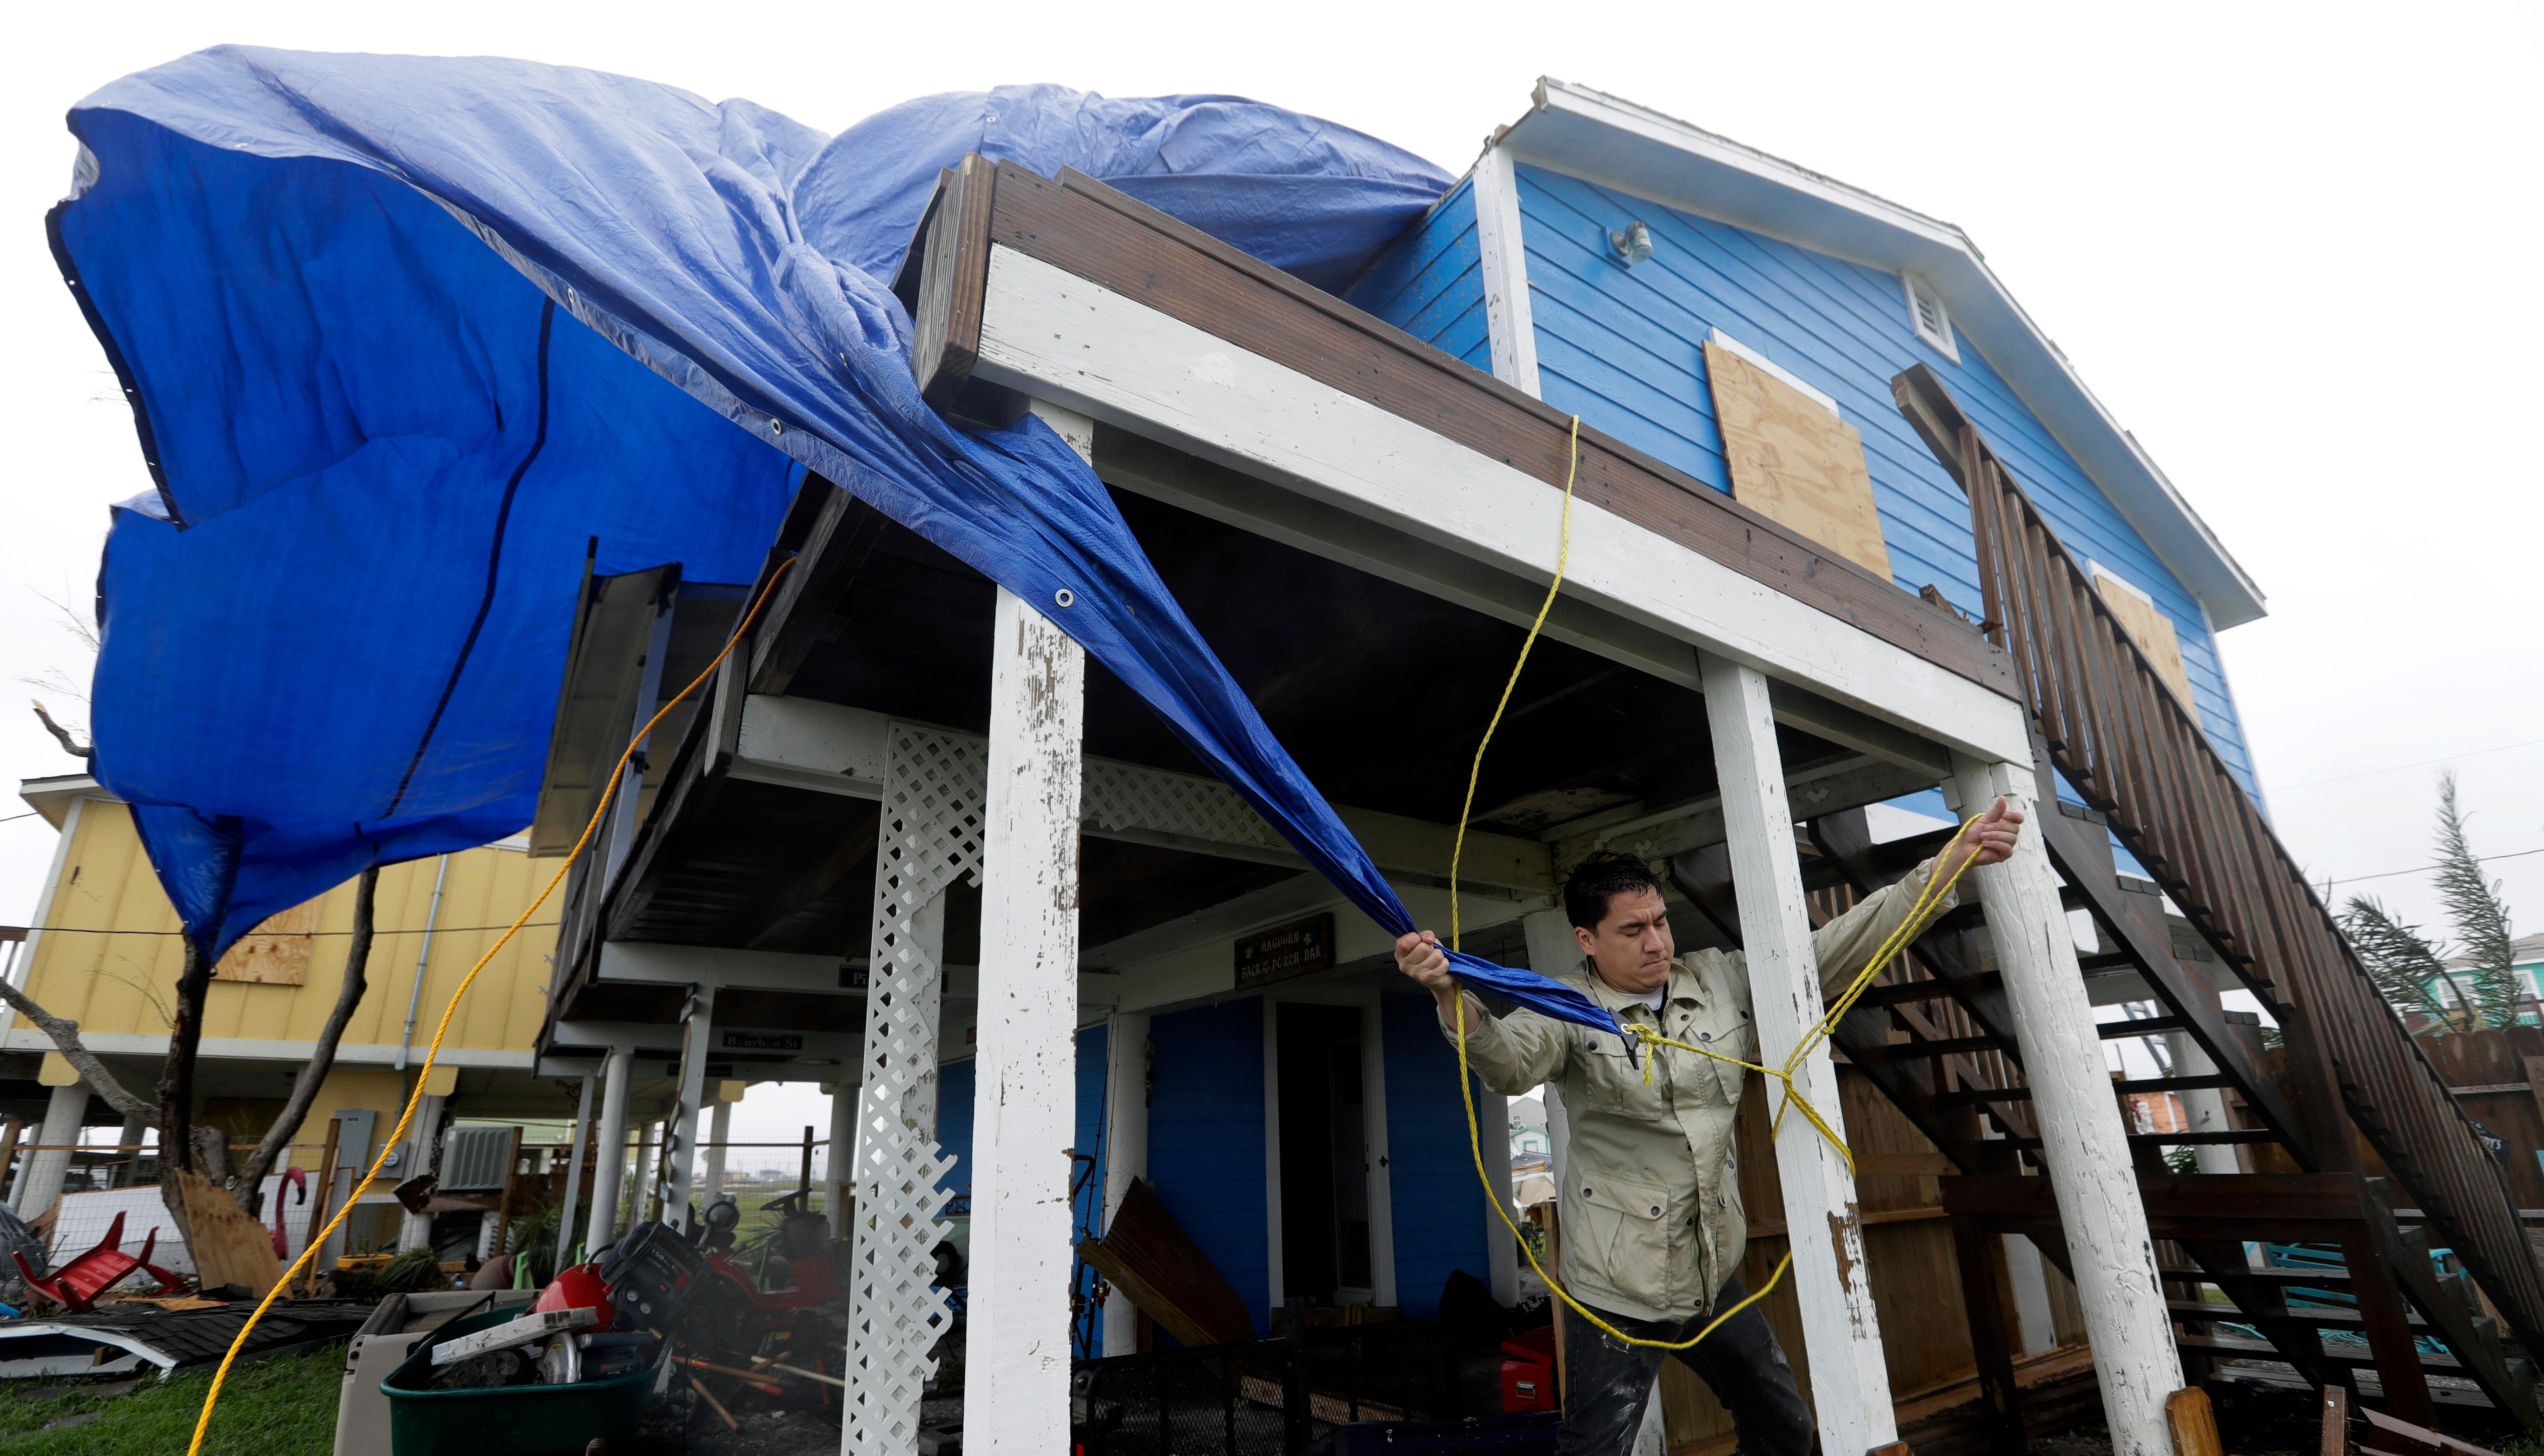 Shawn Hagdorn helps to cover the roof of his father's home that was damaged in the wake of Hurricane Harvey, Monday, Aug. 28, 2017, in Rockport, Texas. (AP Photo/Eric Gay)